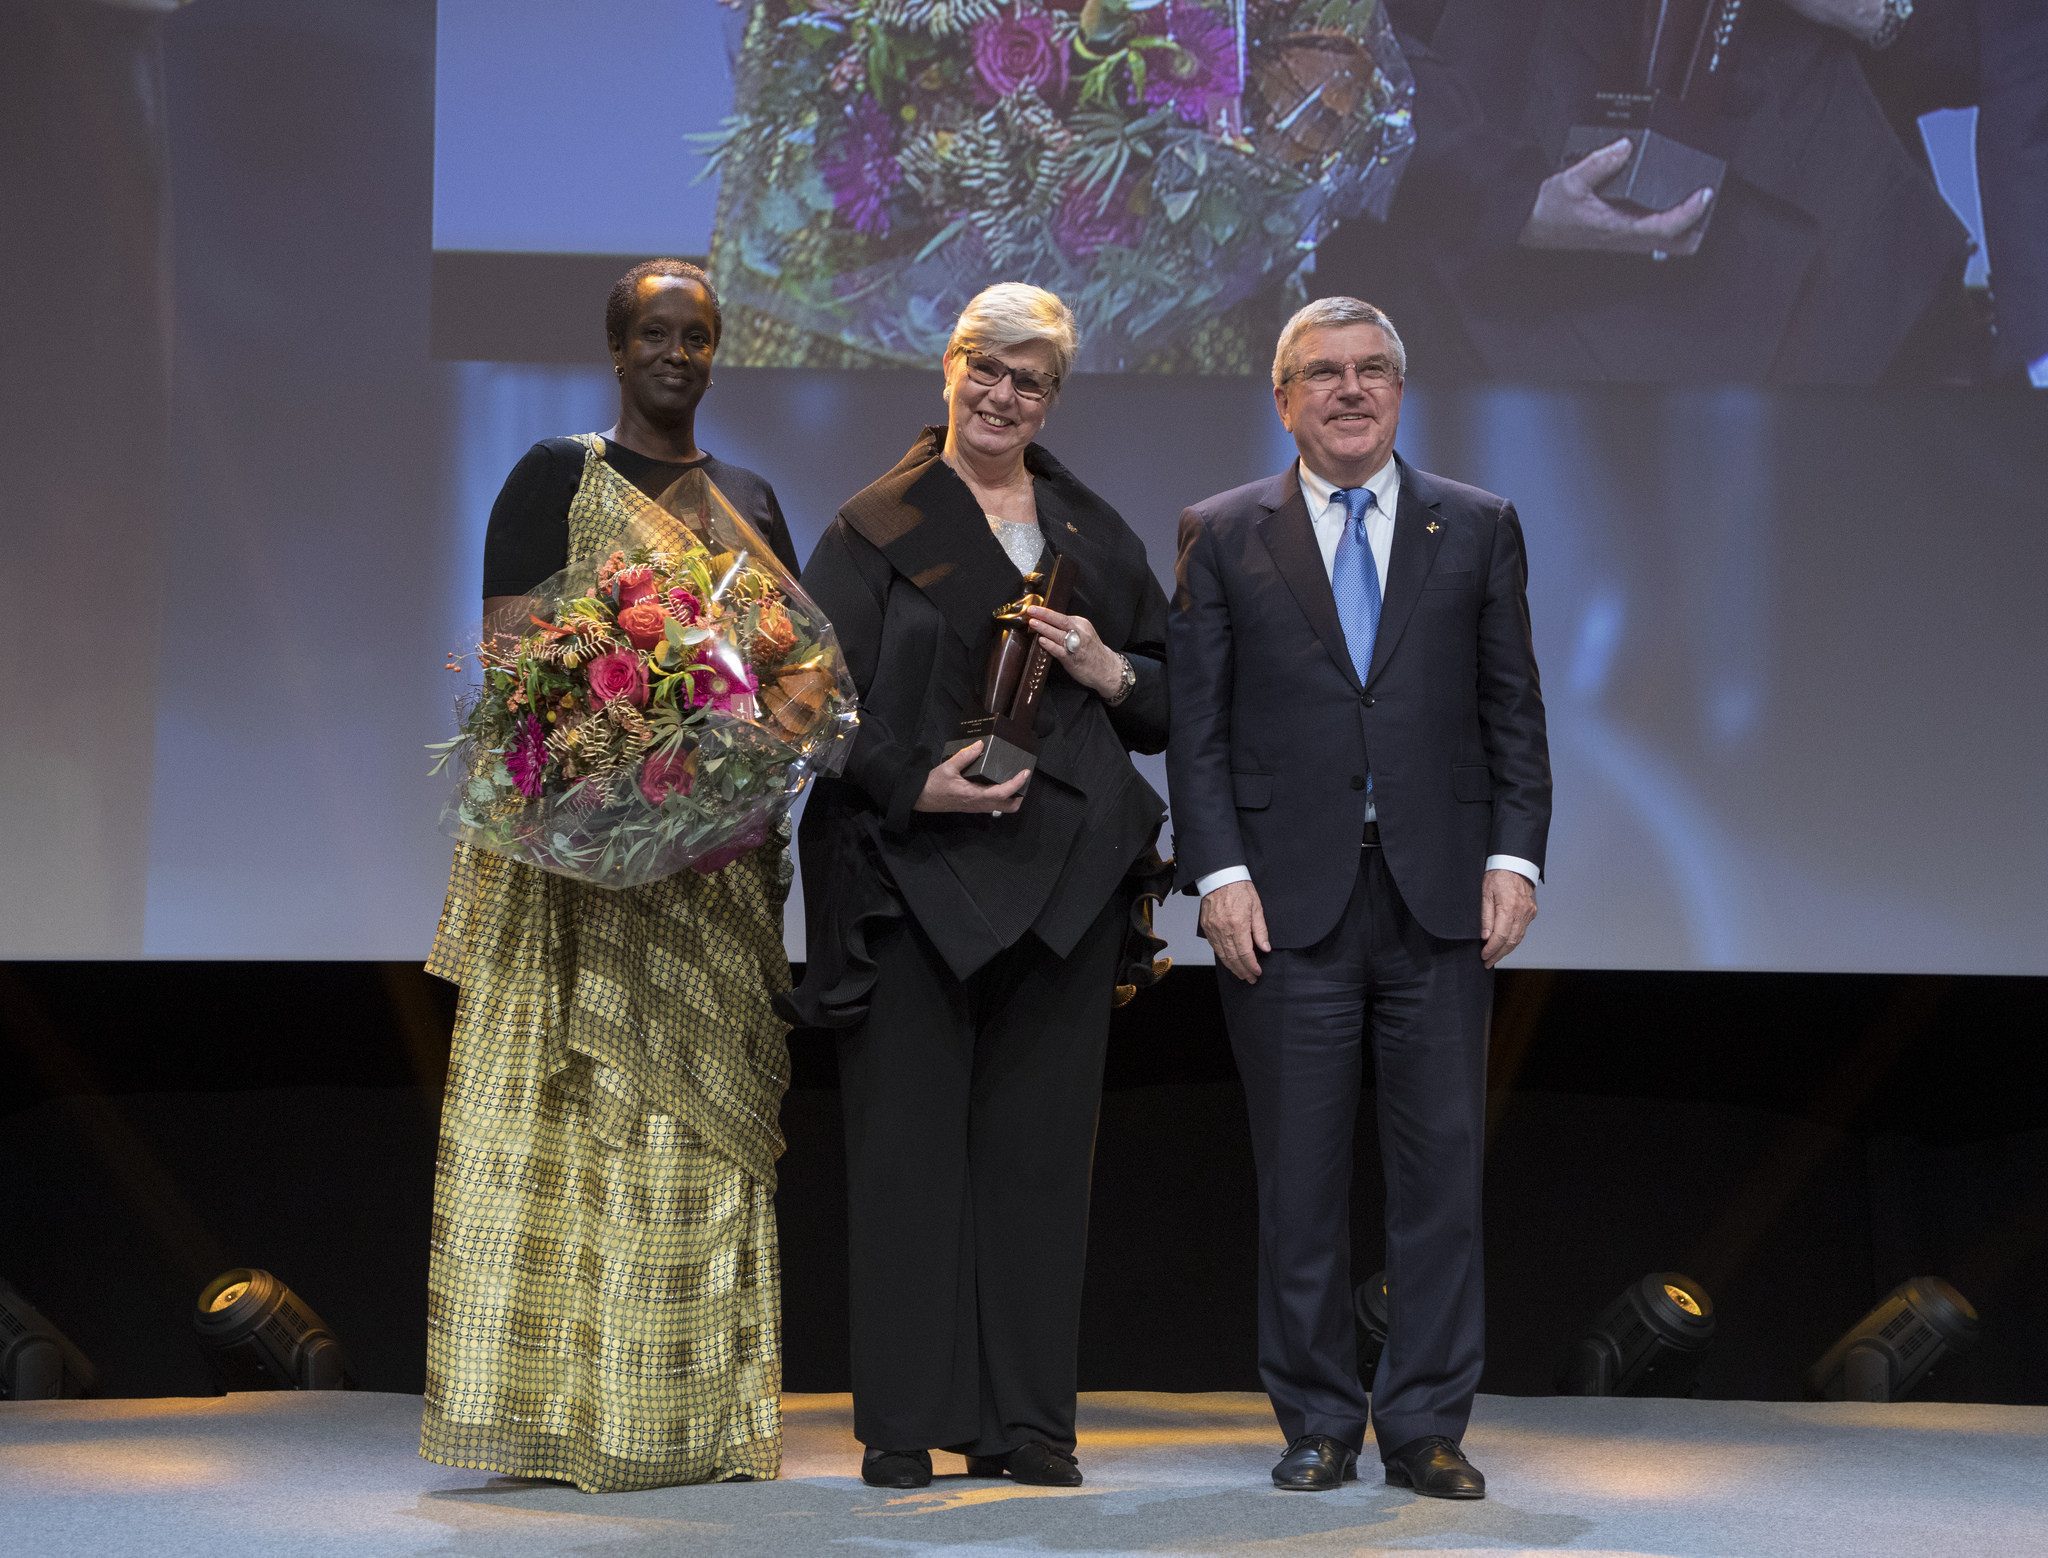 New Leaders is a legacy project of Finland's Birgitta Kervinen, centre, the winner of the 2017 IOC Women and Sport World Trophy presented by Thomas Bach, the IOC President, right ©IOC